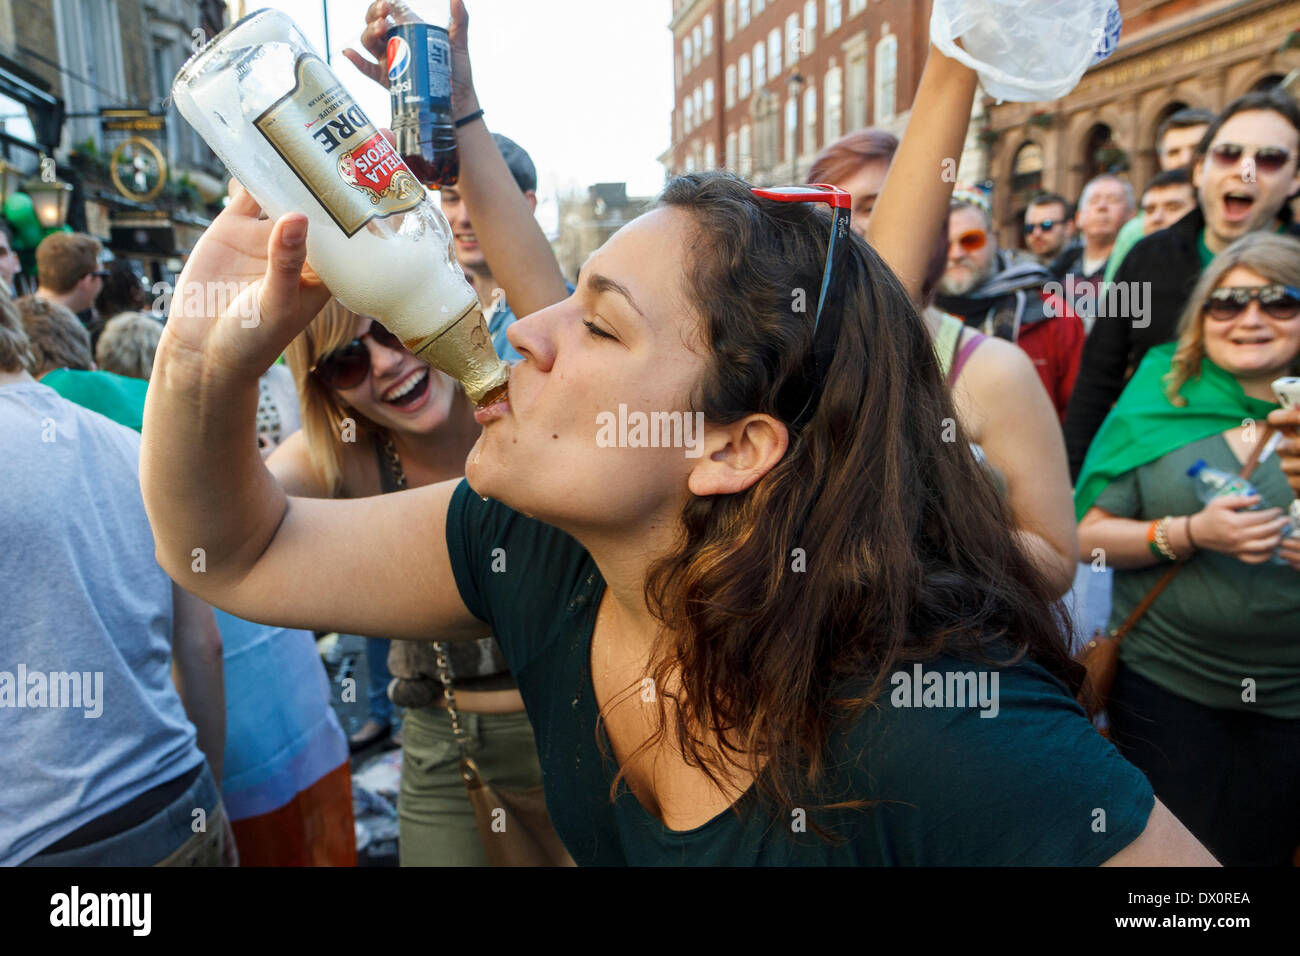 A young woman drinks cider from a bottle as she is encouraged by onlookers during St Patrick's Day Celebrations. London  UK - Stock Image